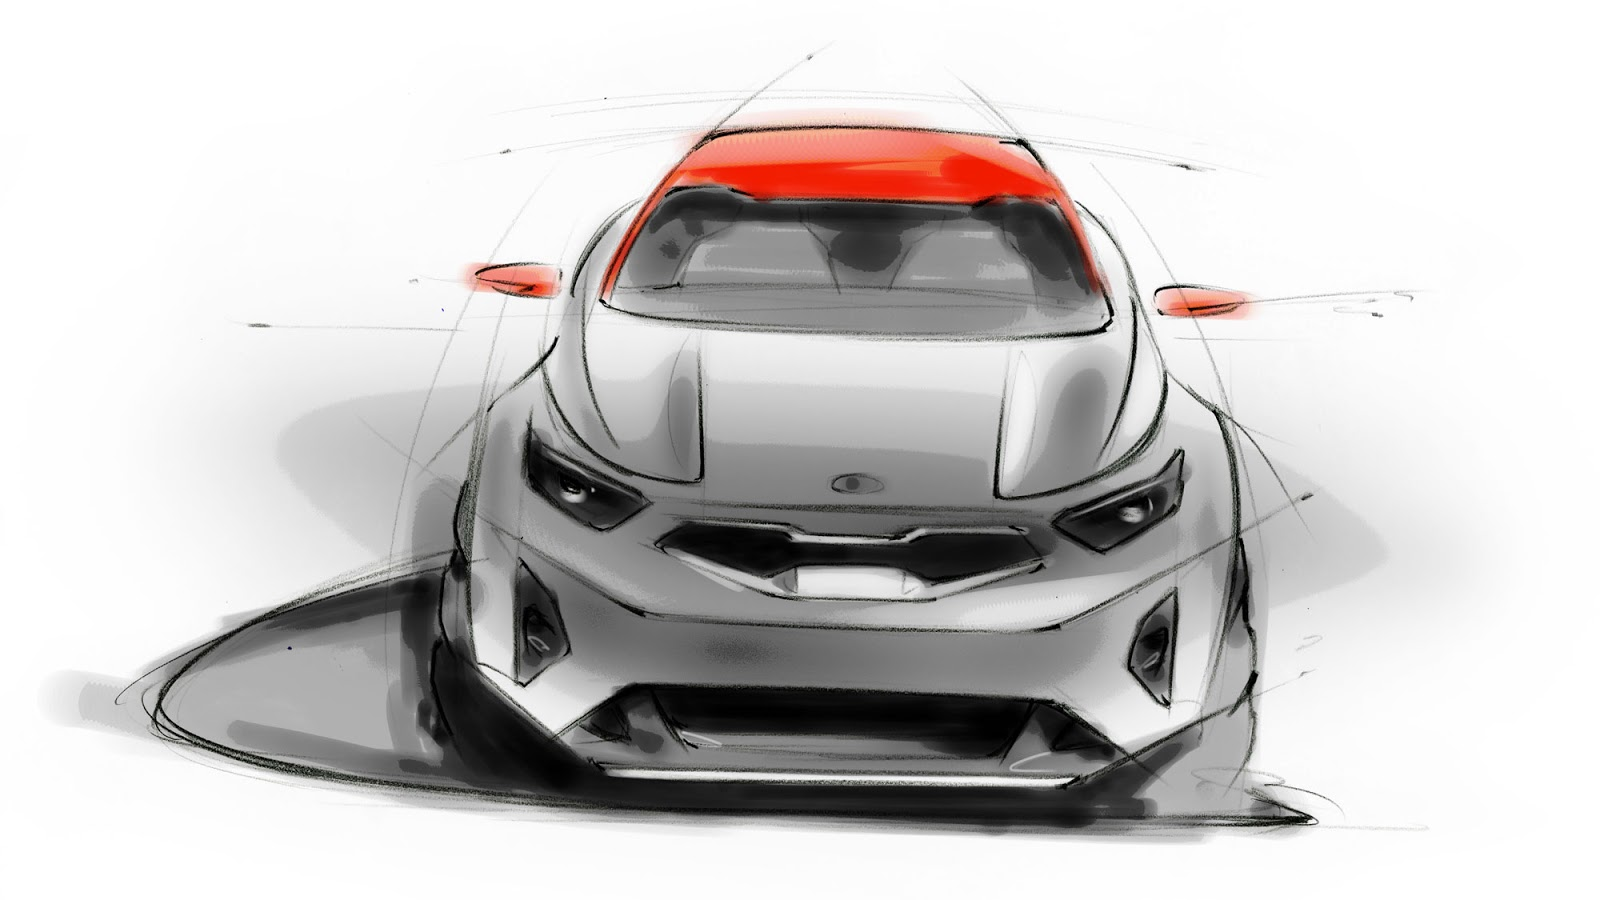 Kia Stonic sketch - early styling sketch front view